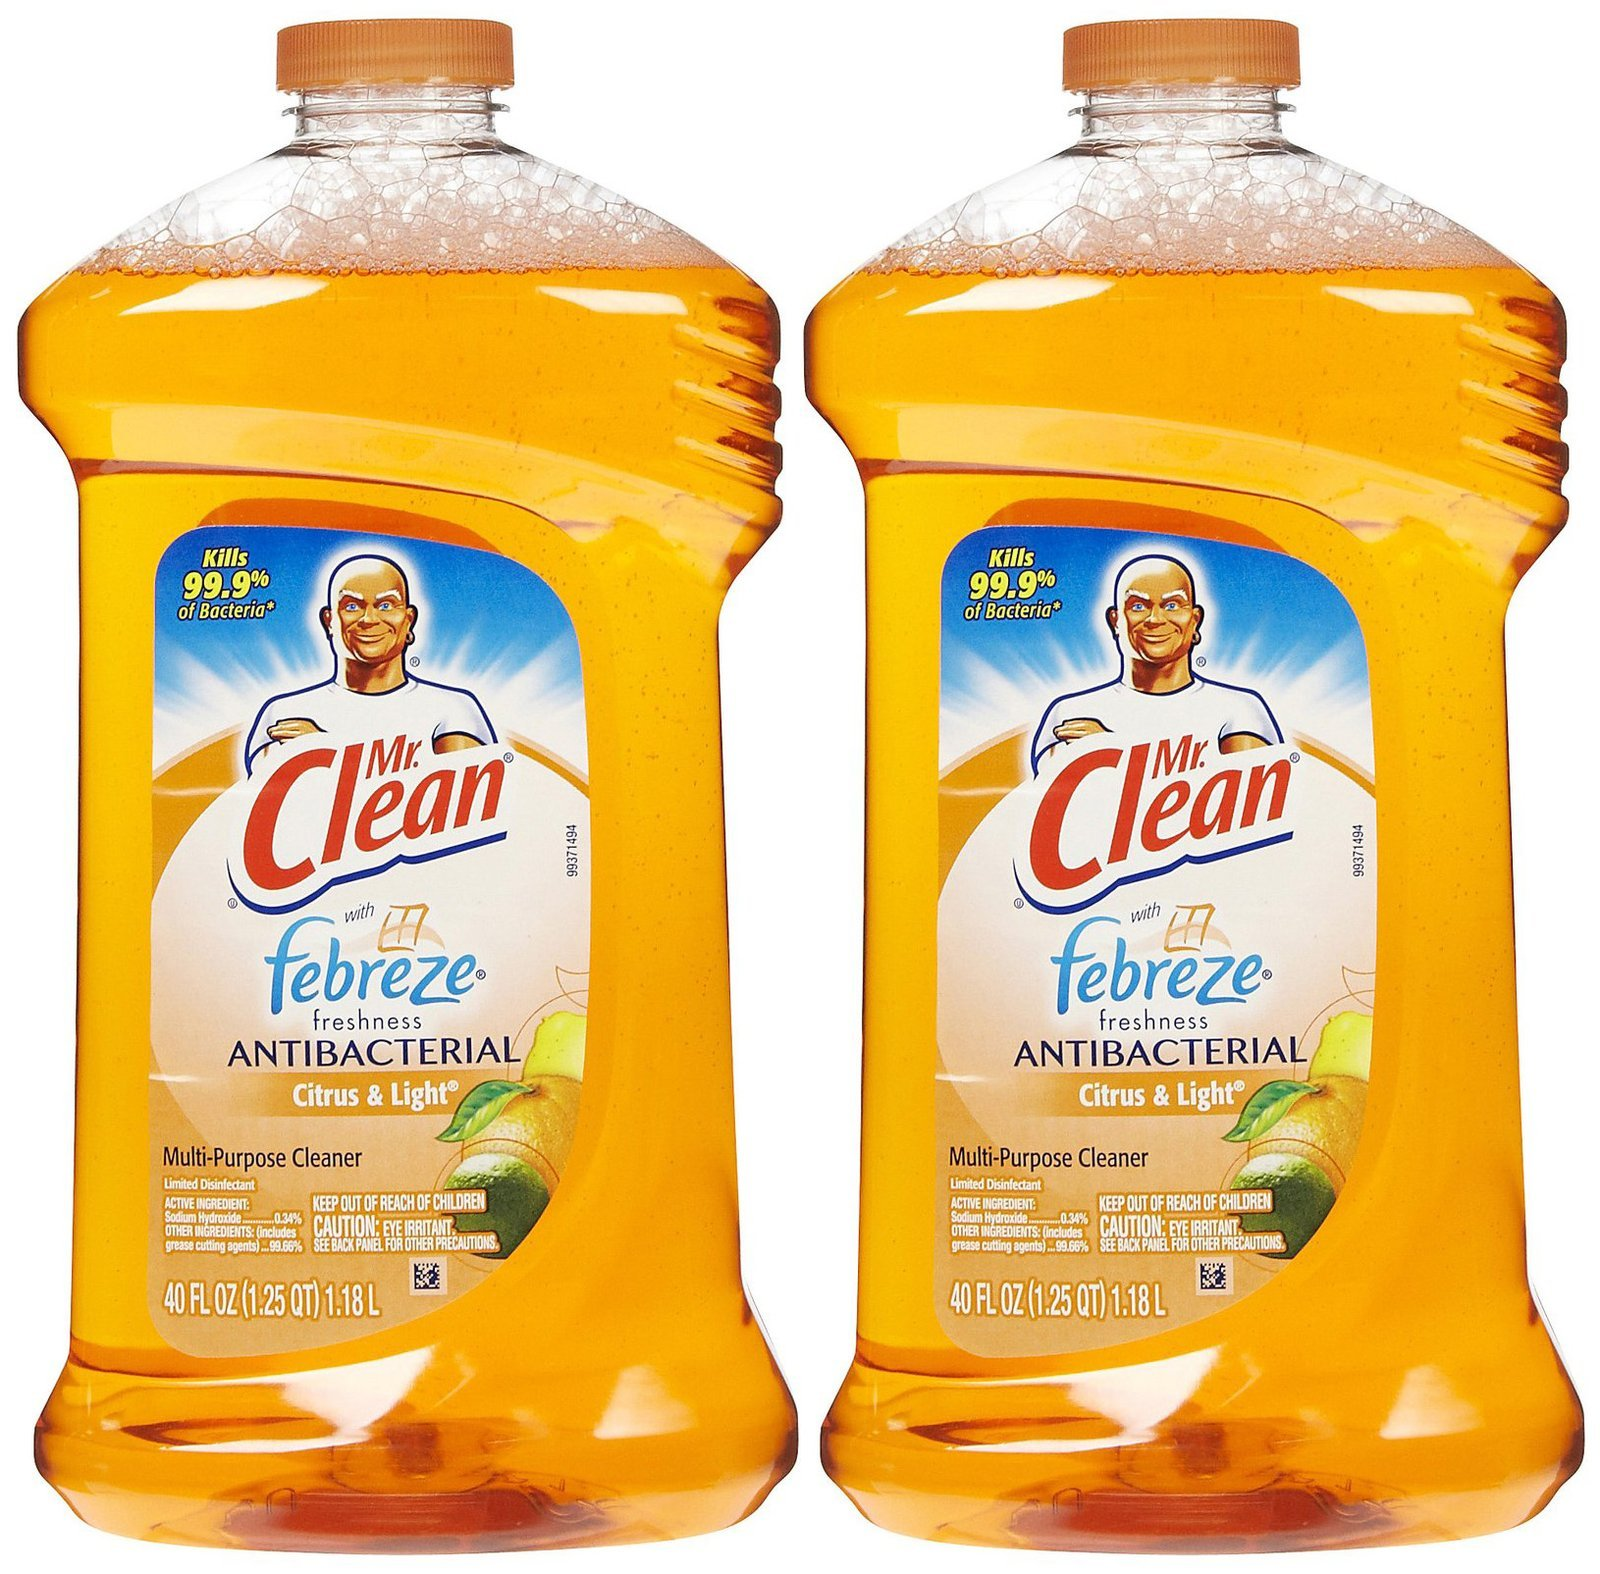 Mr. Clean with Febreze Freshness Antibacterial Liquid Cleaner - 40 oz - Citrus & Light - 2 pk